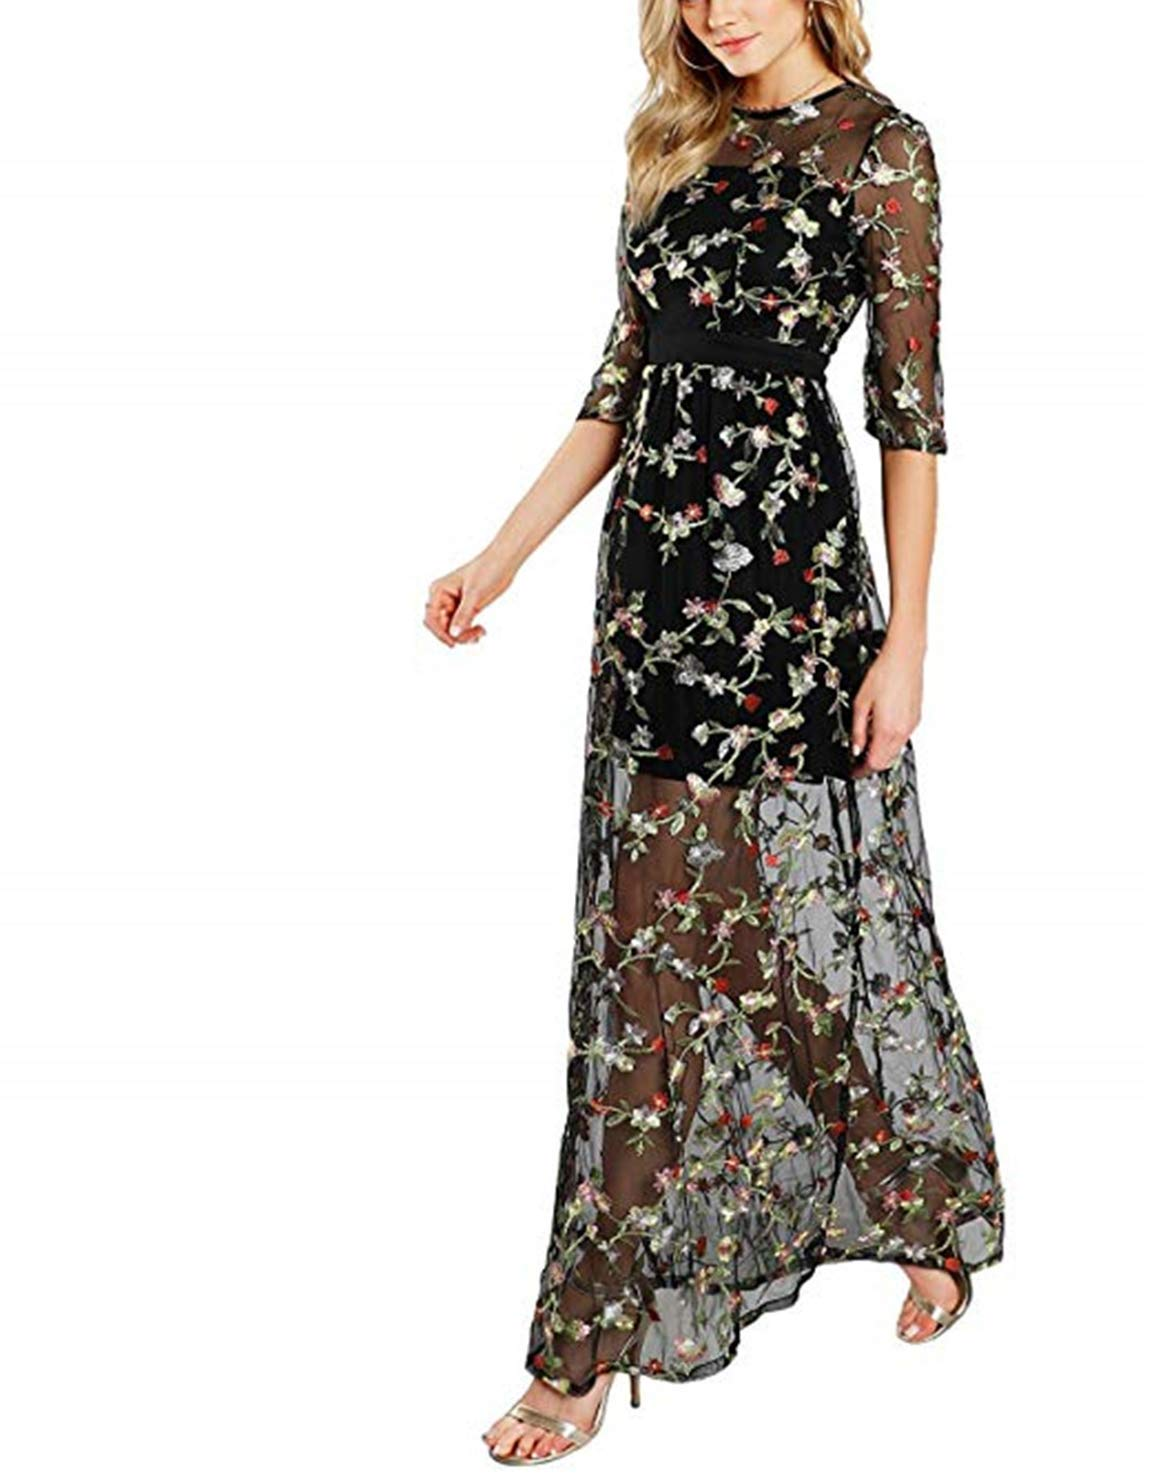 4172ecc51c5 Scarisee Women s 3 4 Long Sleeves Embroidery Prom Evening Dresses  Ankle-Length Formal Party Gowns Black 14